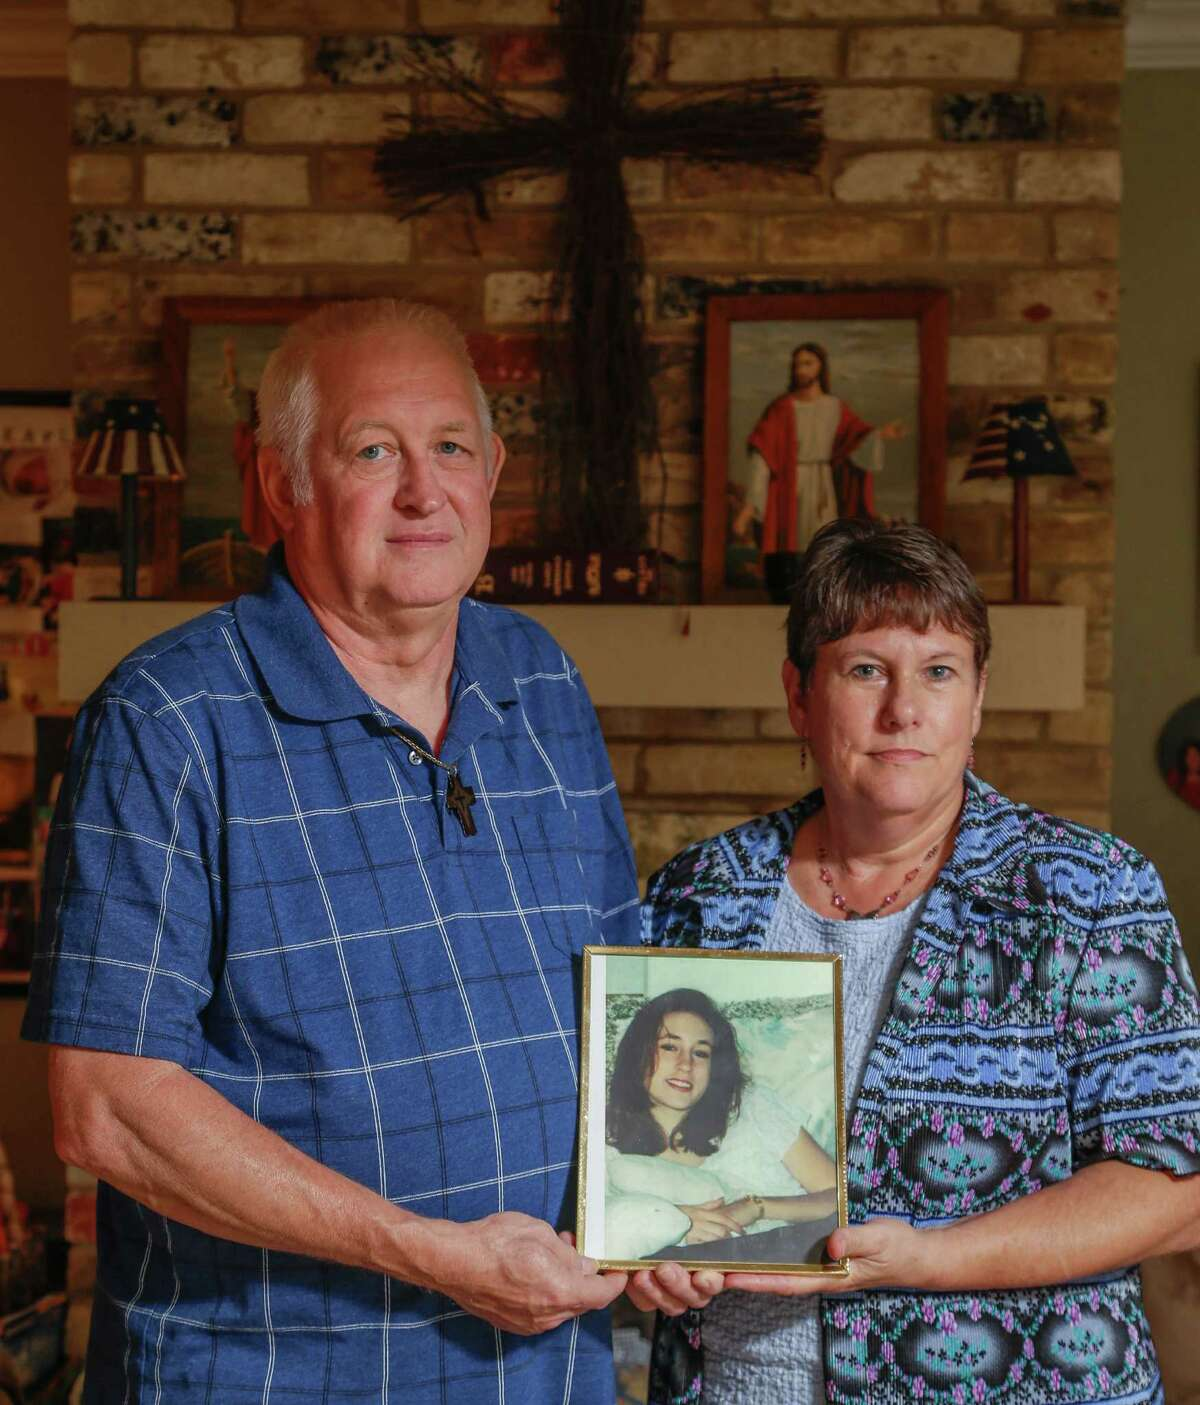 Charles and Sandy Trotter, parents of the slain student, say killer Larry Ray Swearingen has become a poster boy for those opposed to the death penalty.